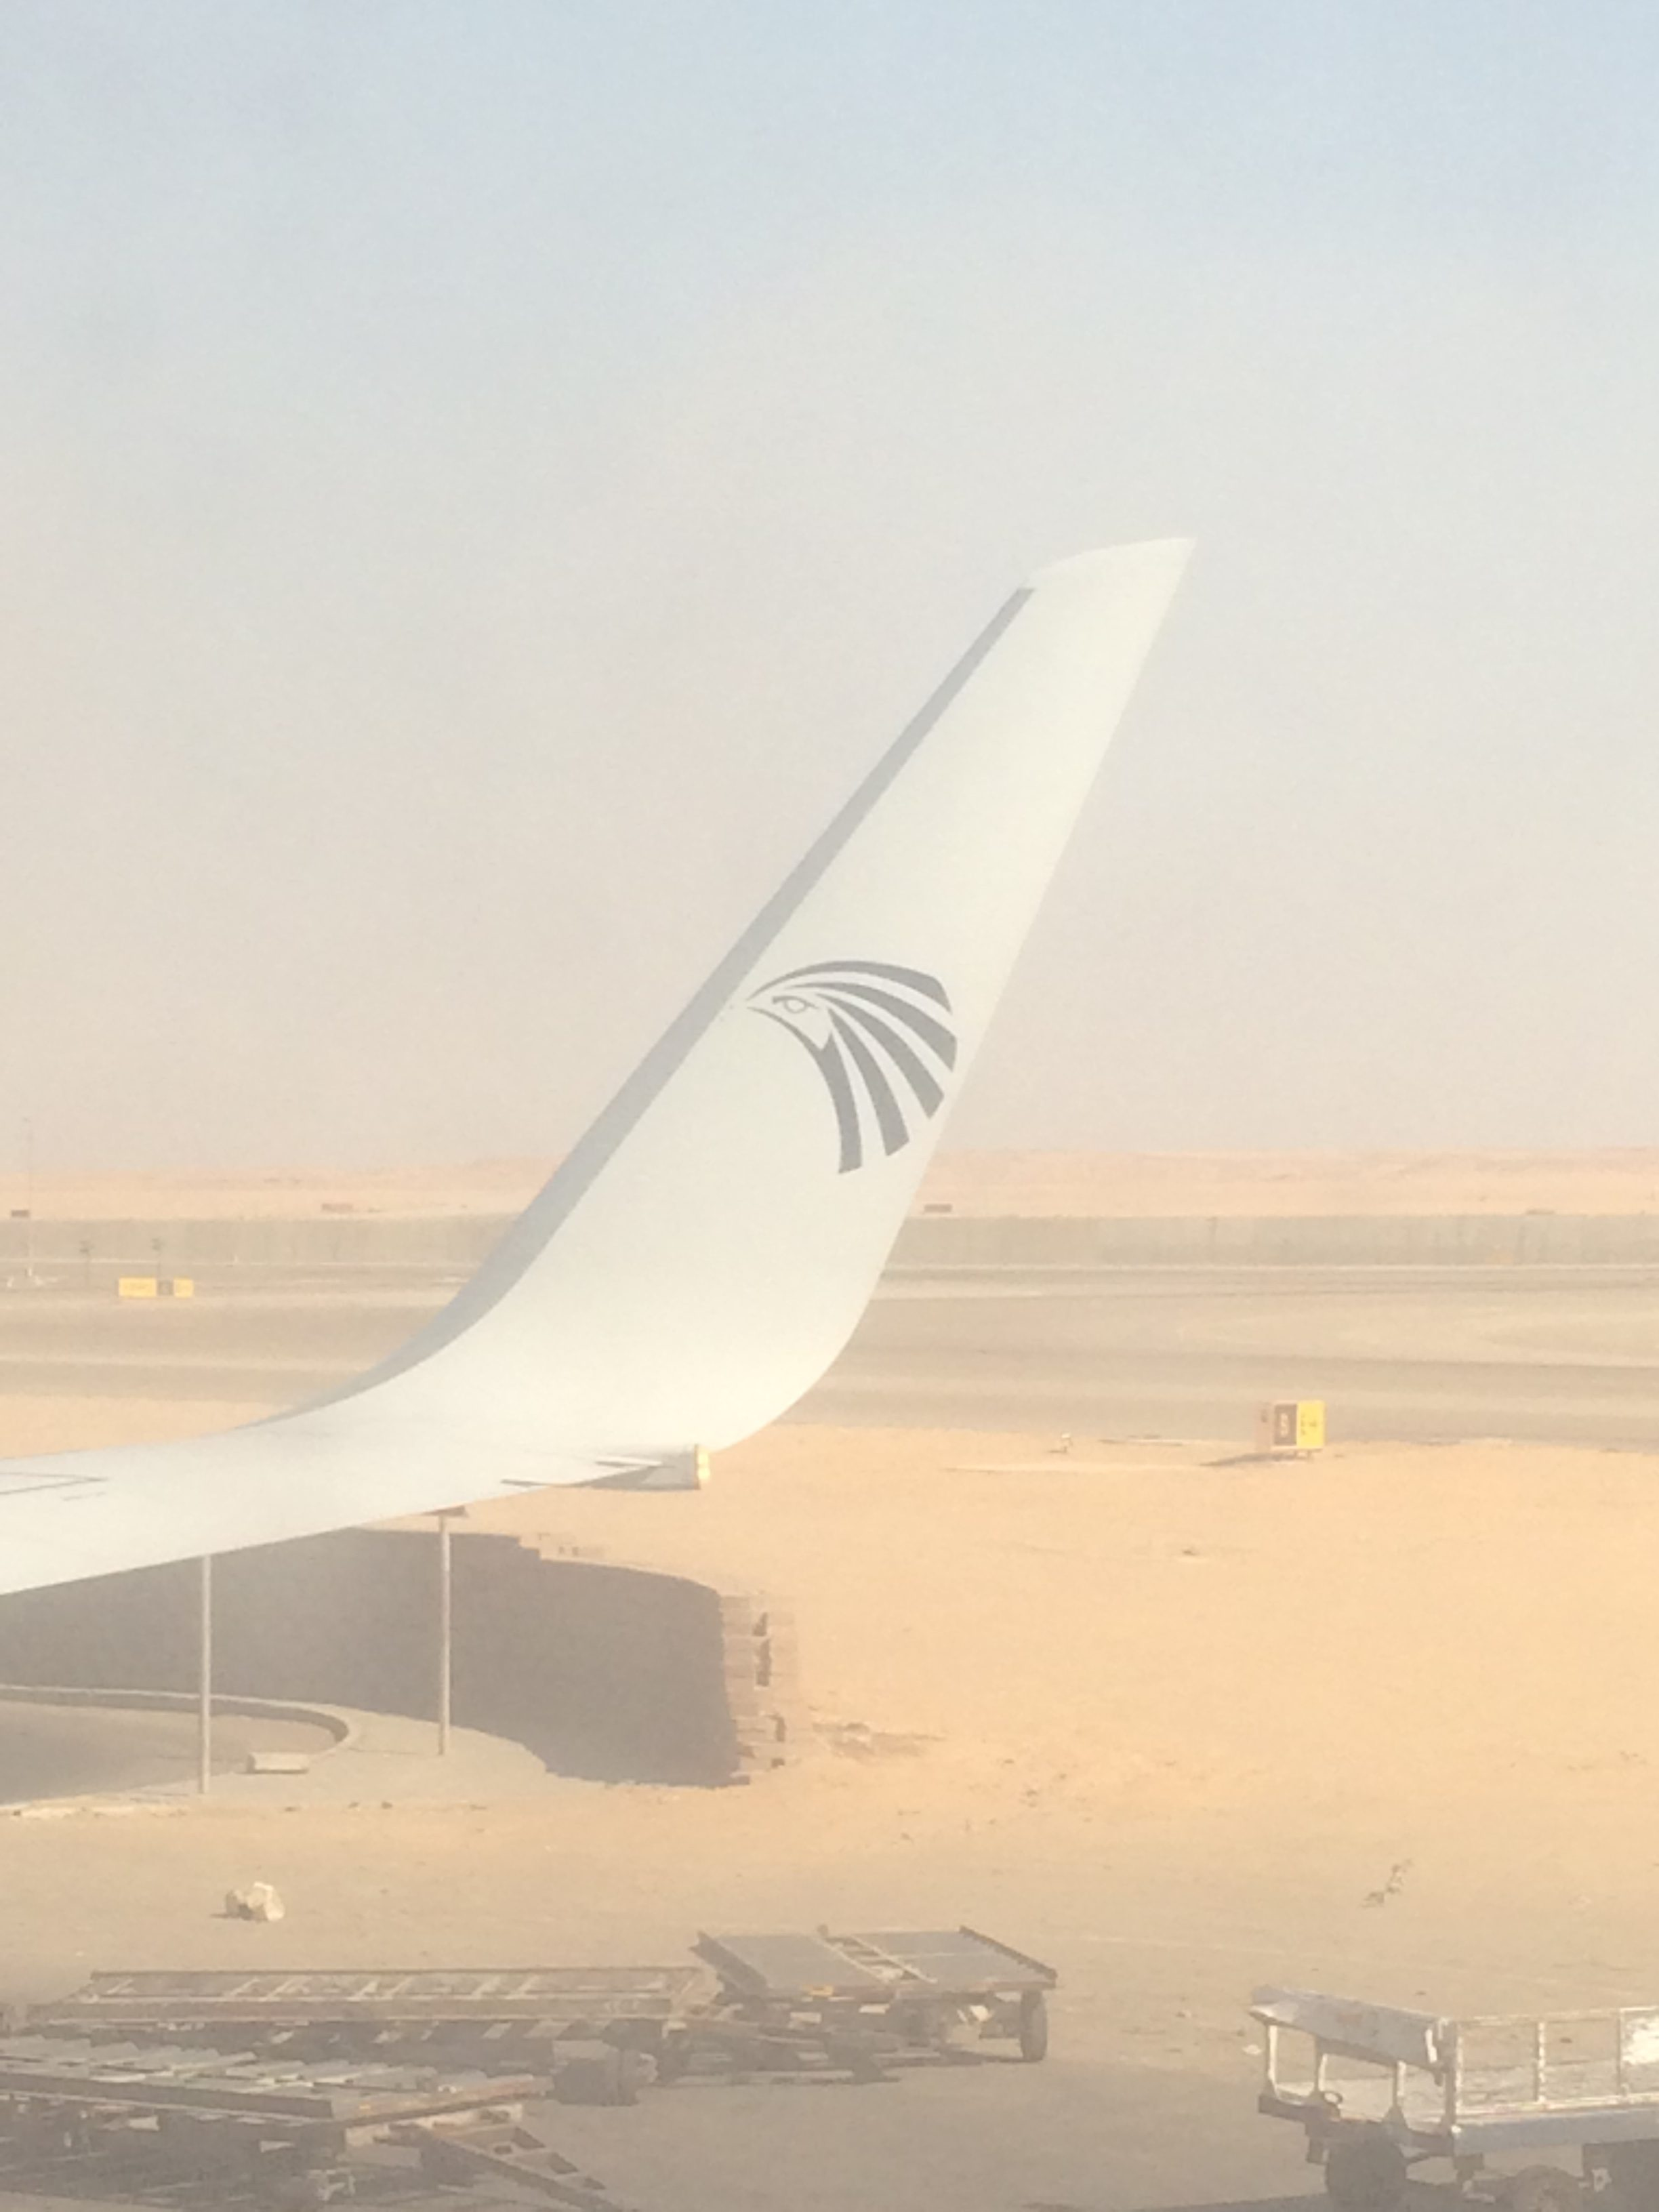 tail of an EgyptAir plane